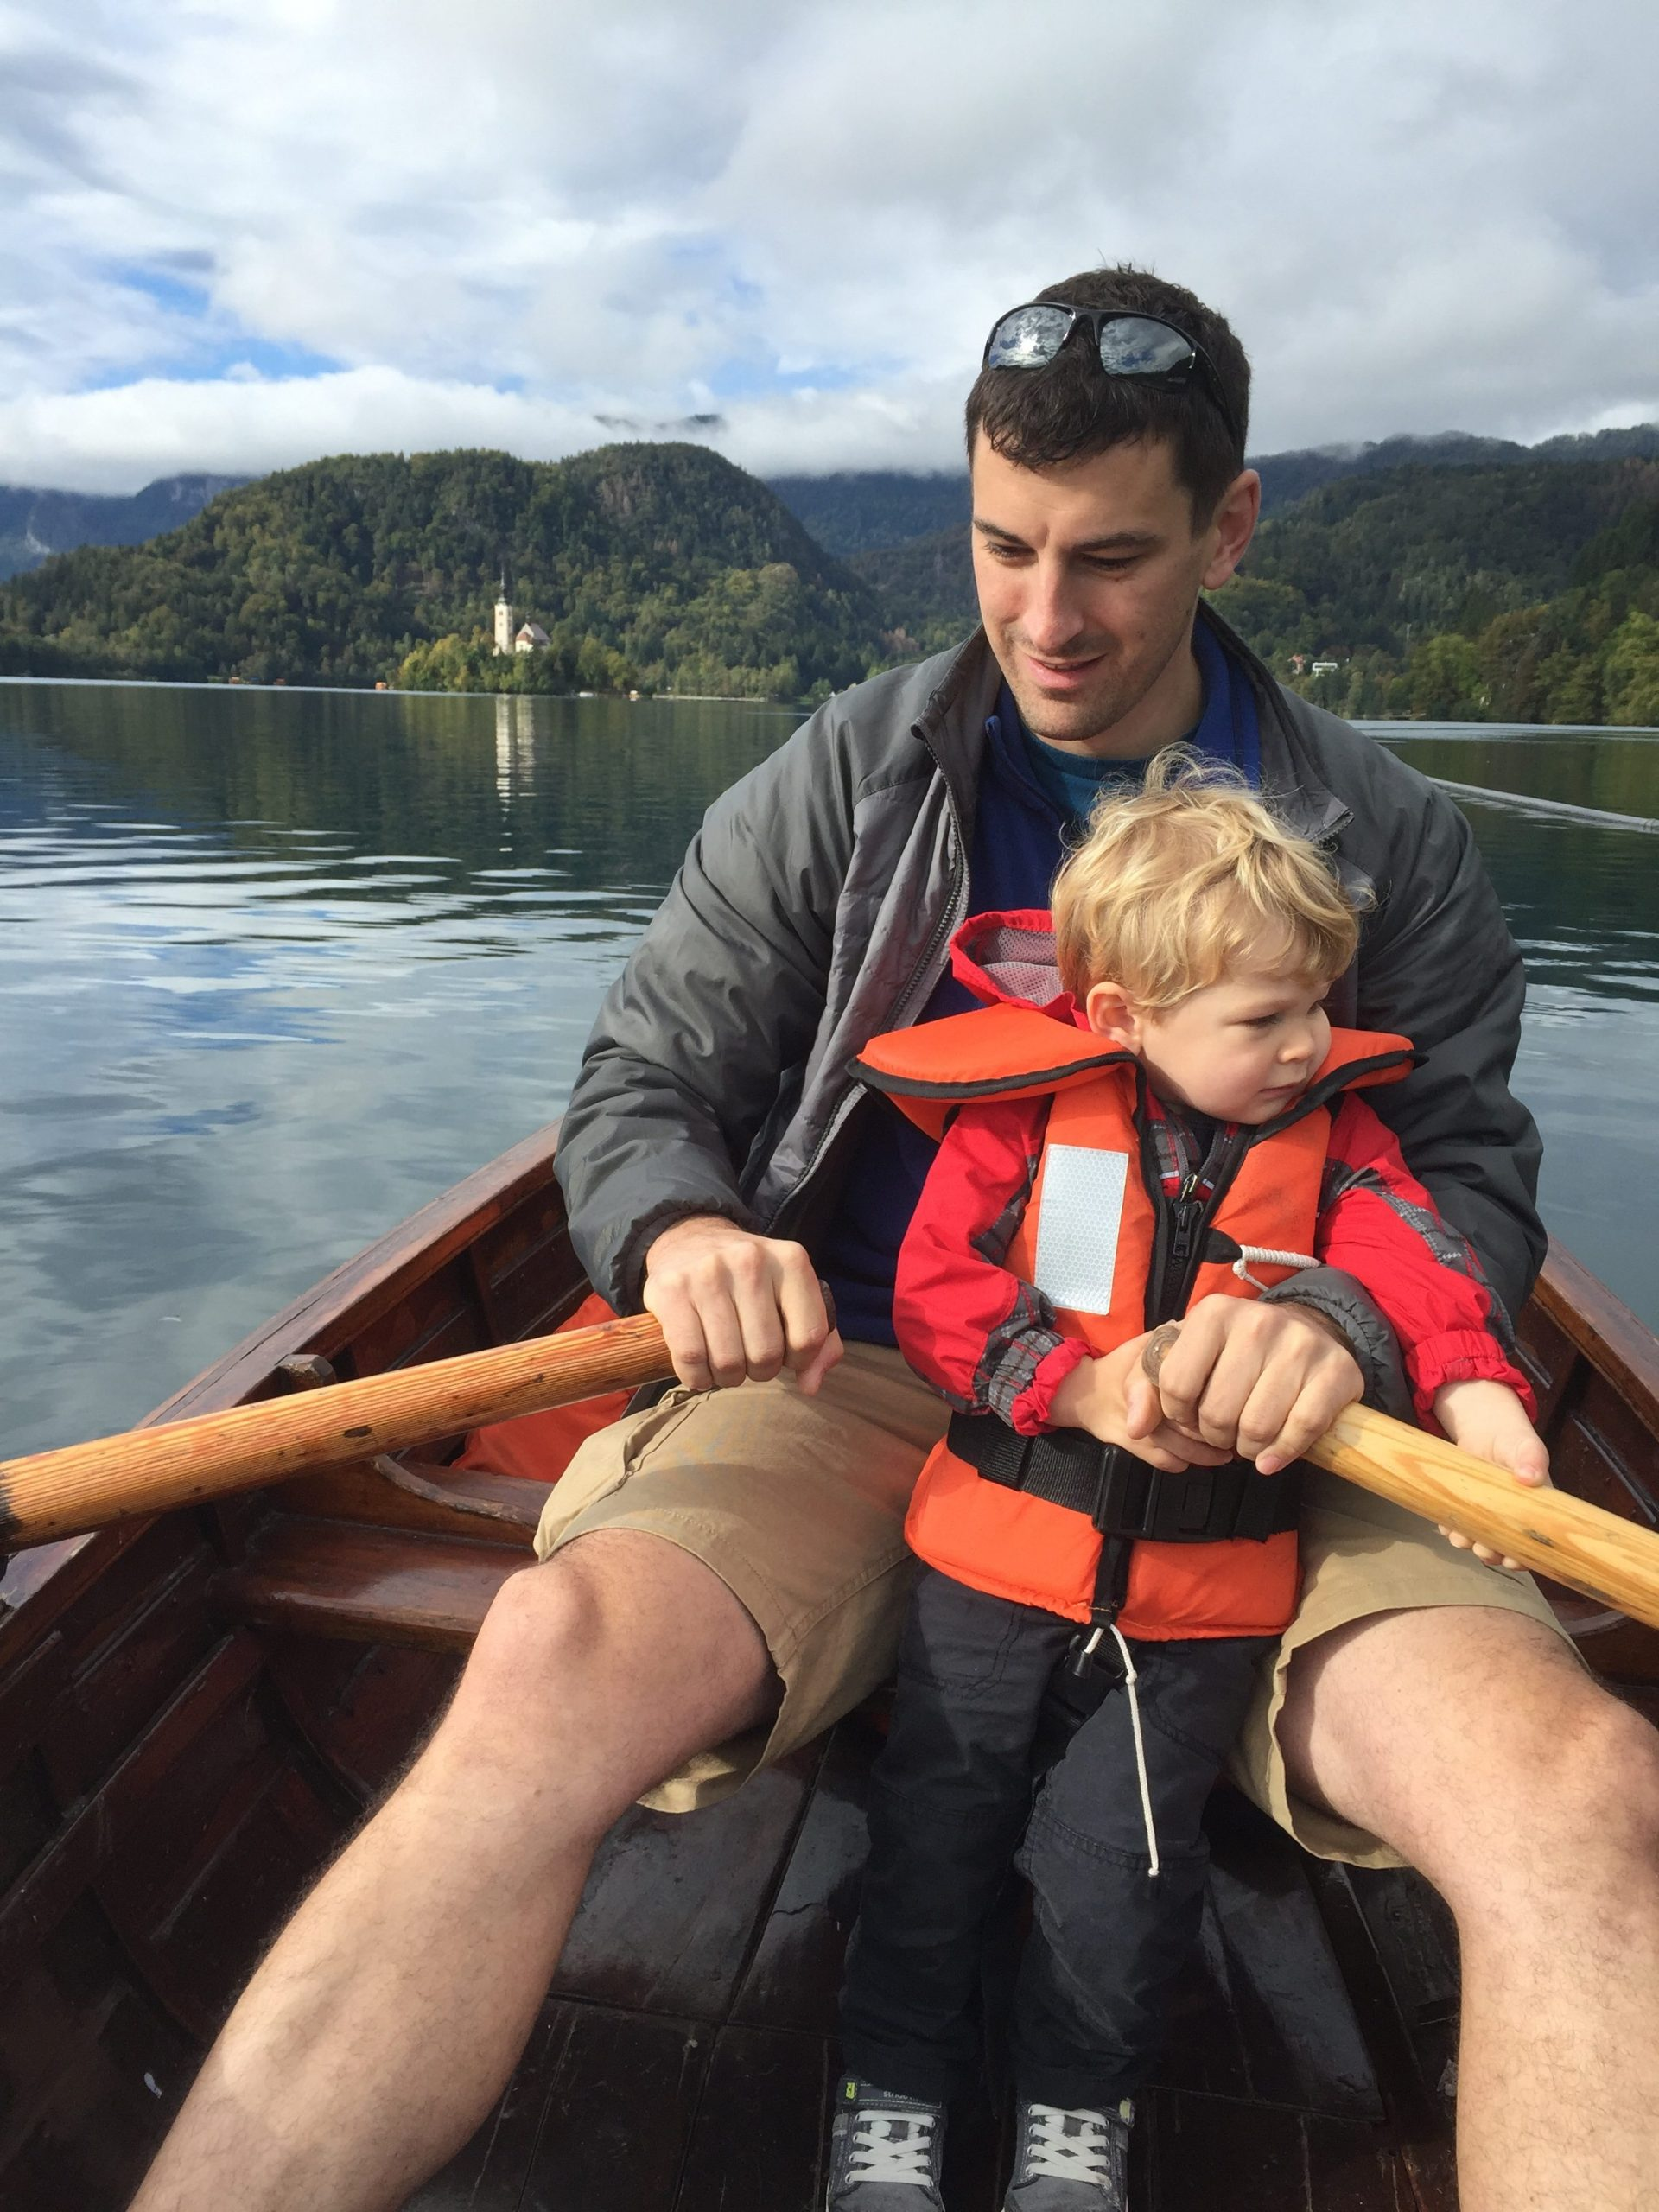 Father and Son Rowing a Boat on Lake Bled